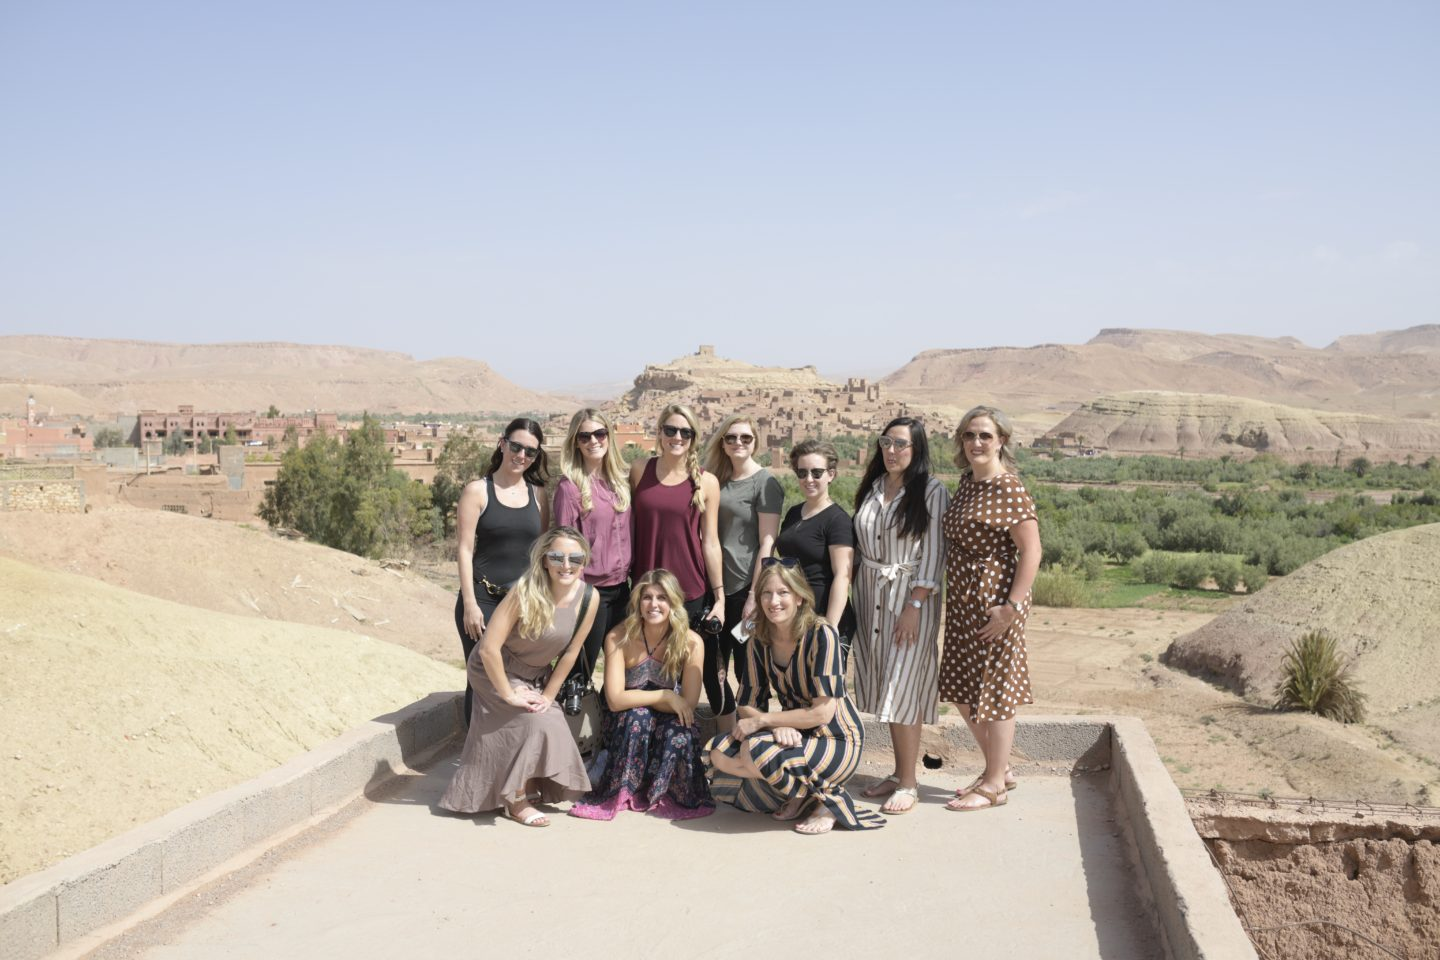 We are Travel Girls gathered after ATVing around Ben Ait Haddou in Morocco at the start of our We are travel girls getaway